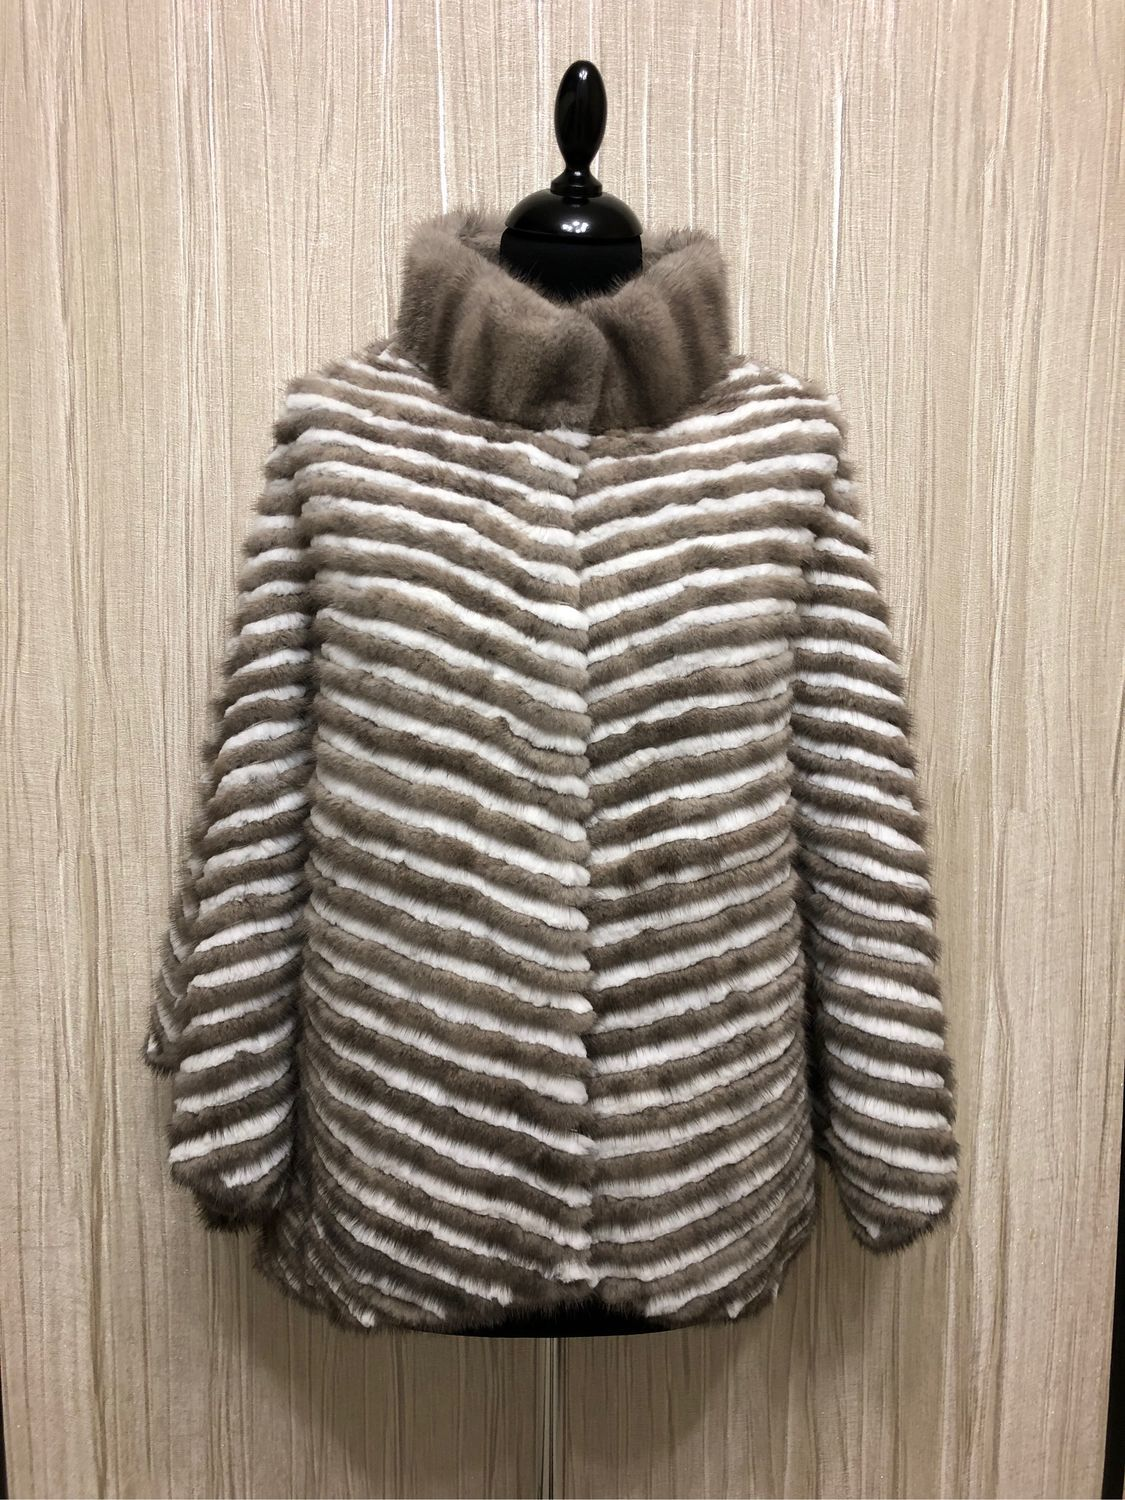 Fur jacket ' LIGHT GRAY', Outerwear Jackets, Moscow,  Фото №1